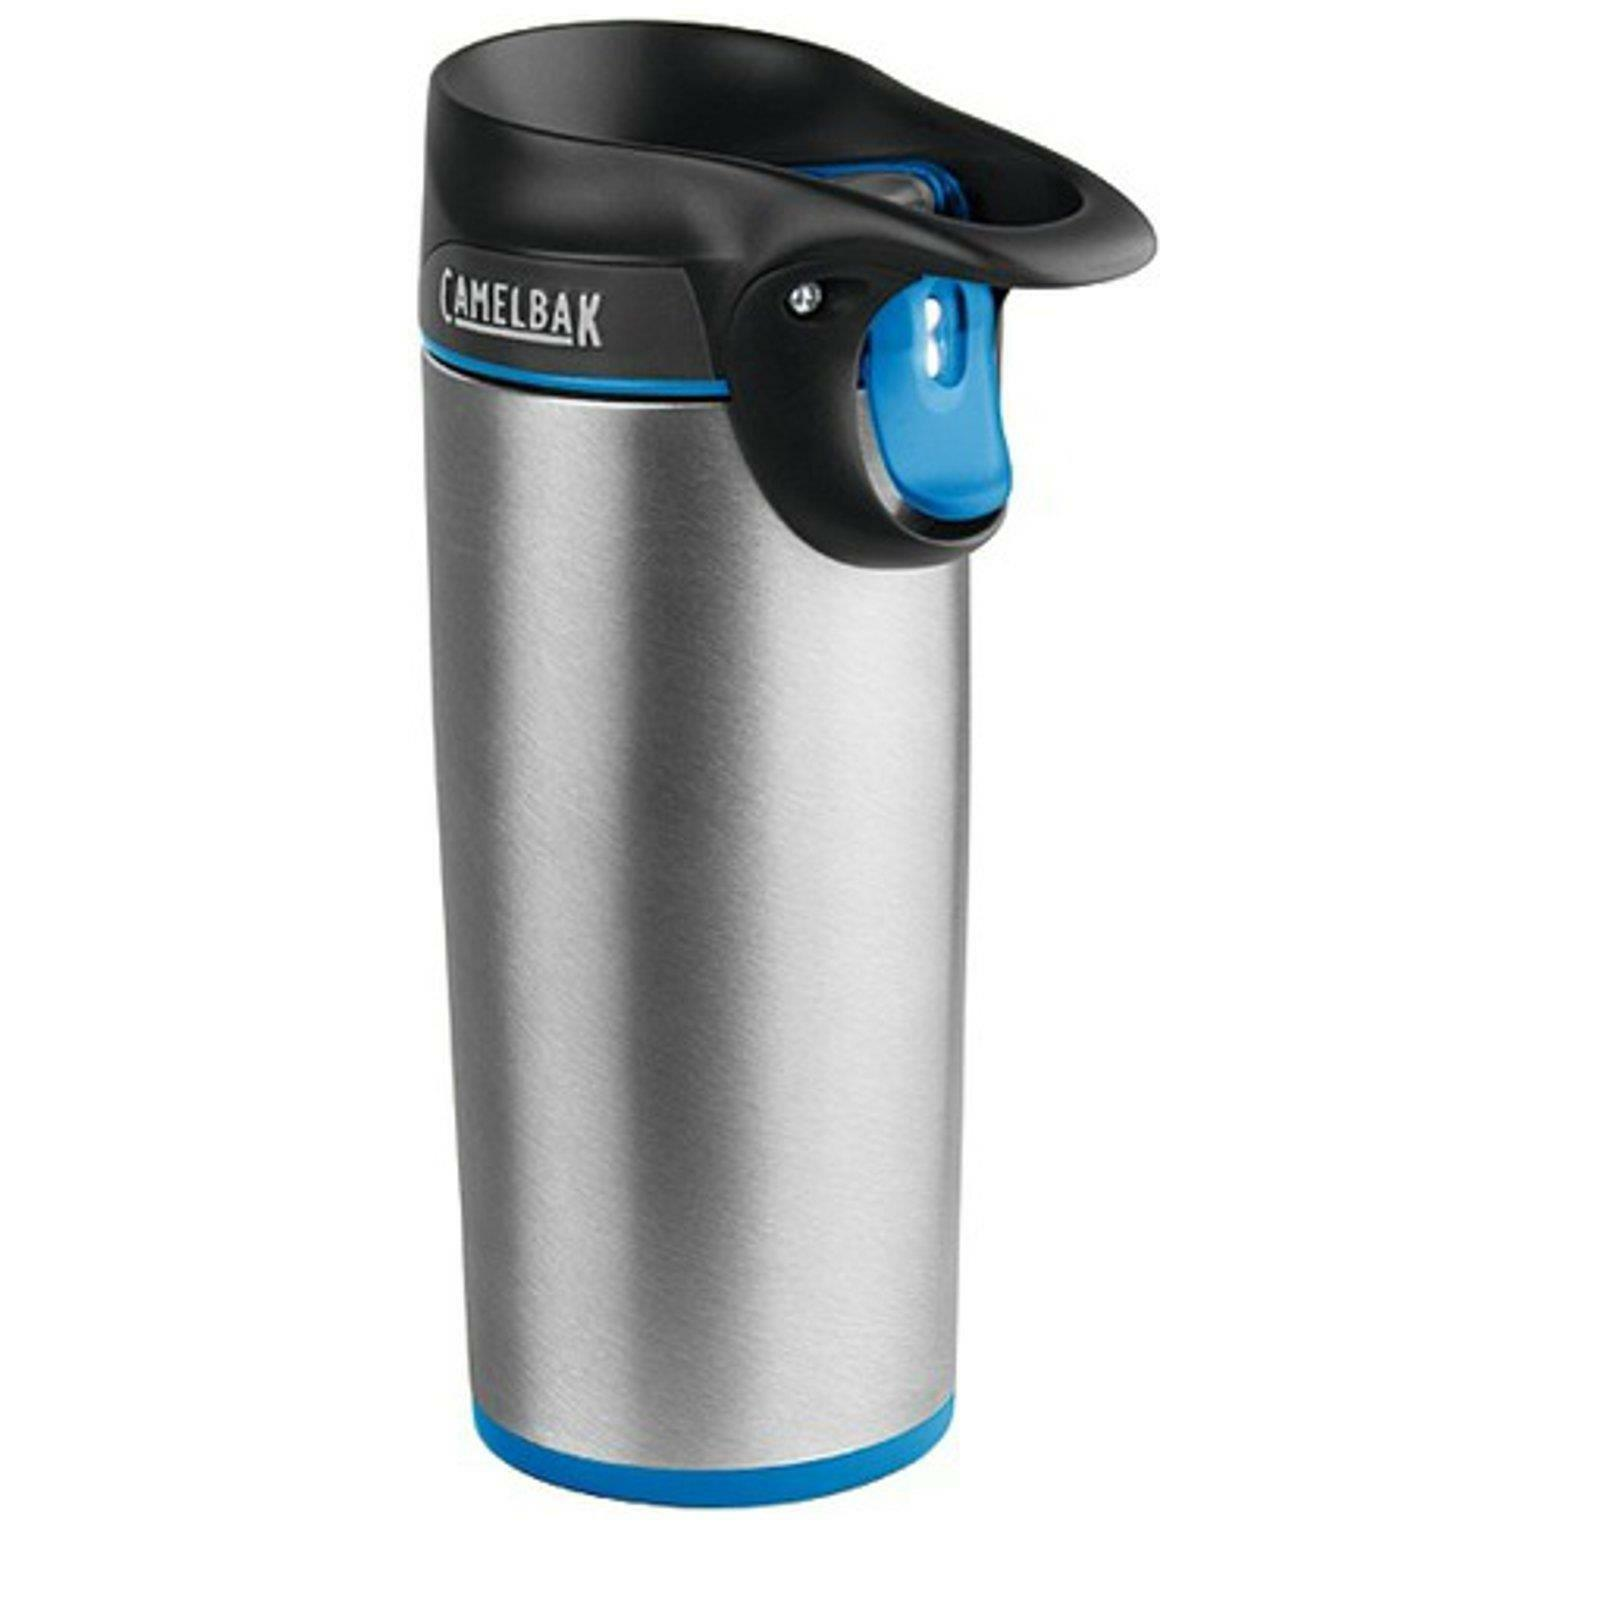 Camelbak FORGE thermo placement voyage voyage voyage tasse bouteille Coffee to Go café thé metal d59d64